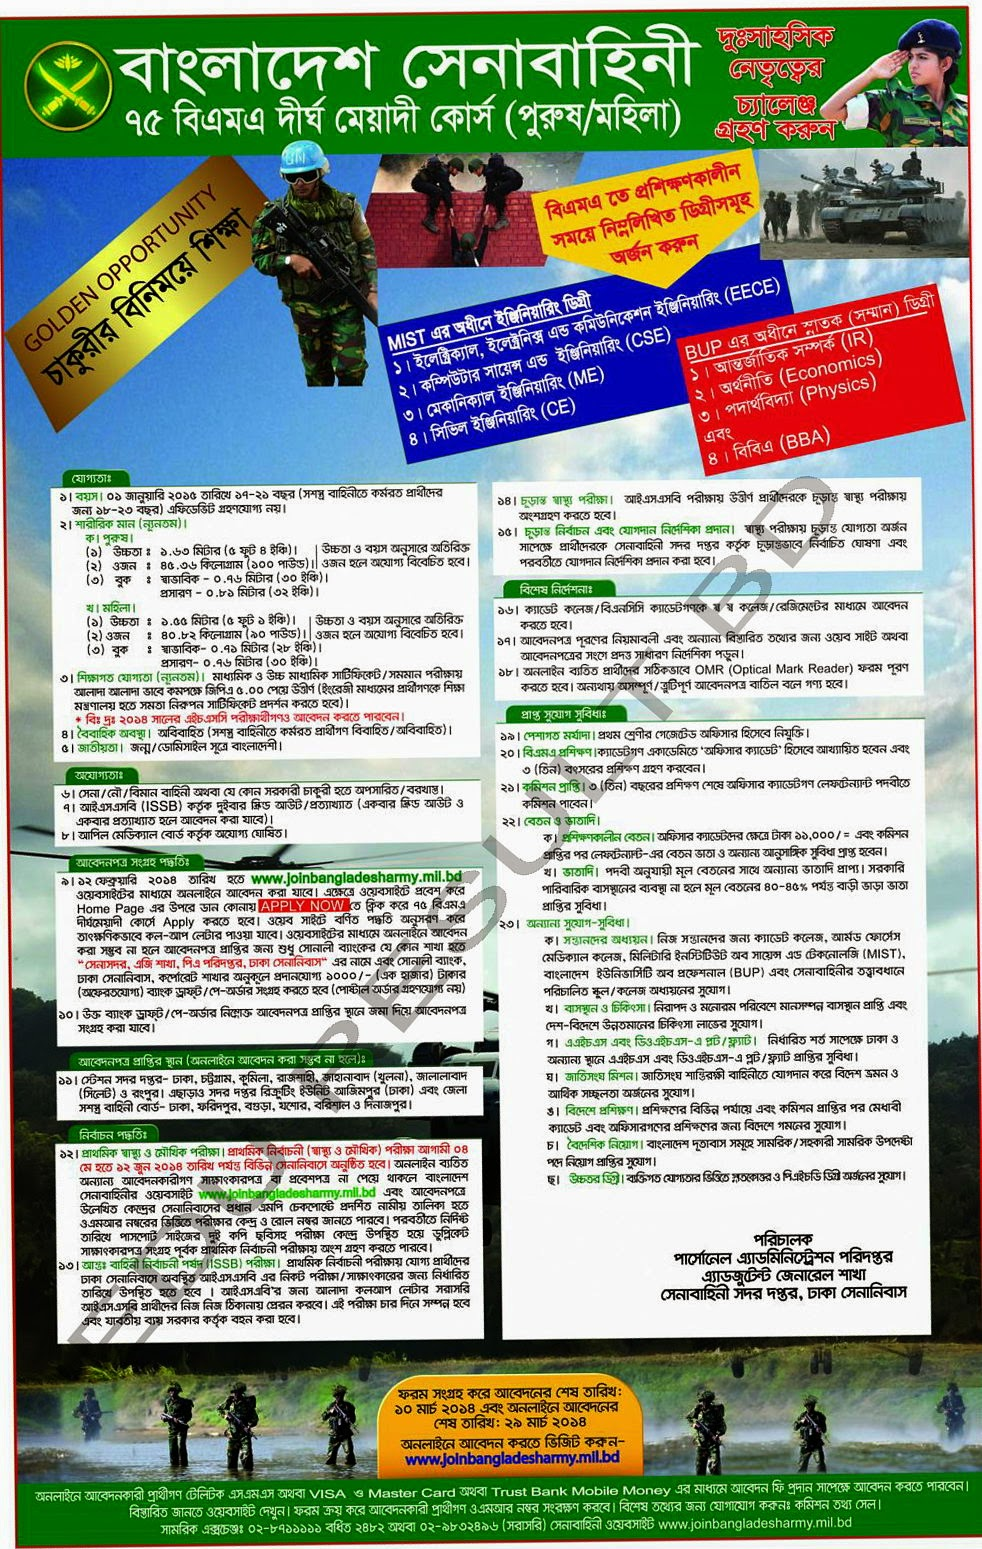 75 BMA Long Course Circular bangladesh Army 2014